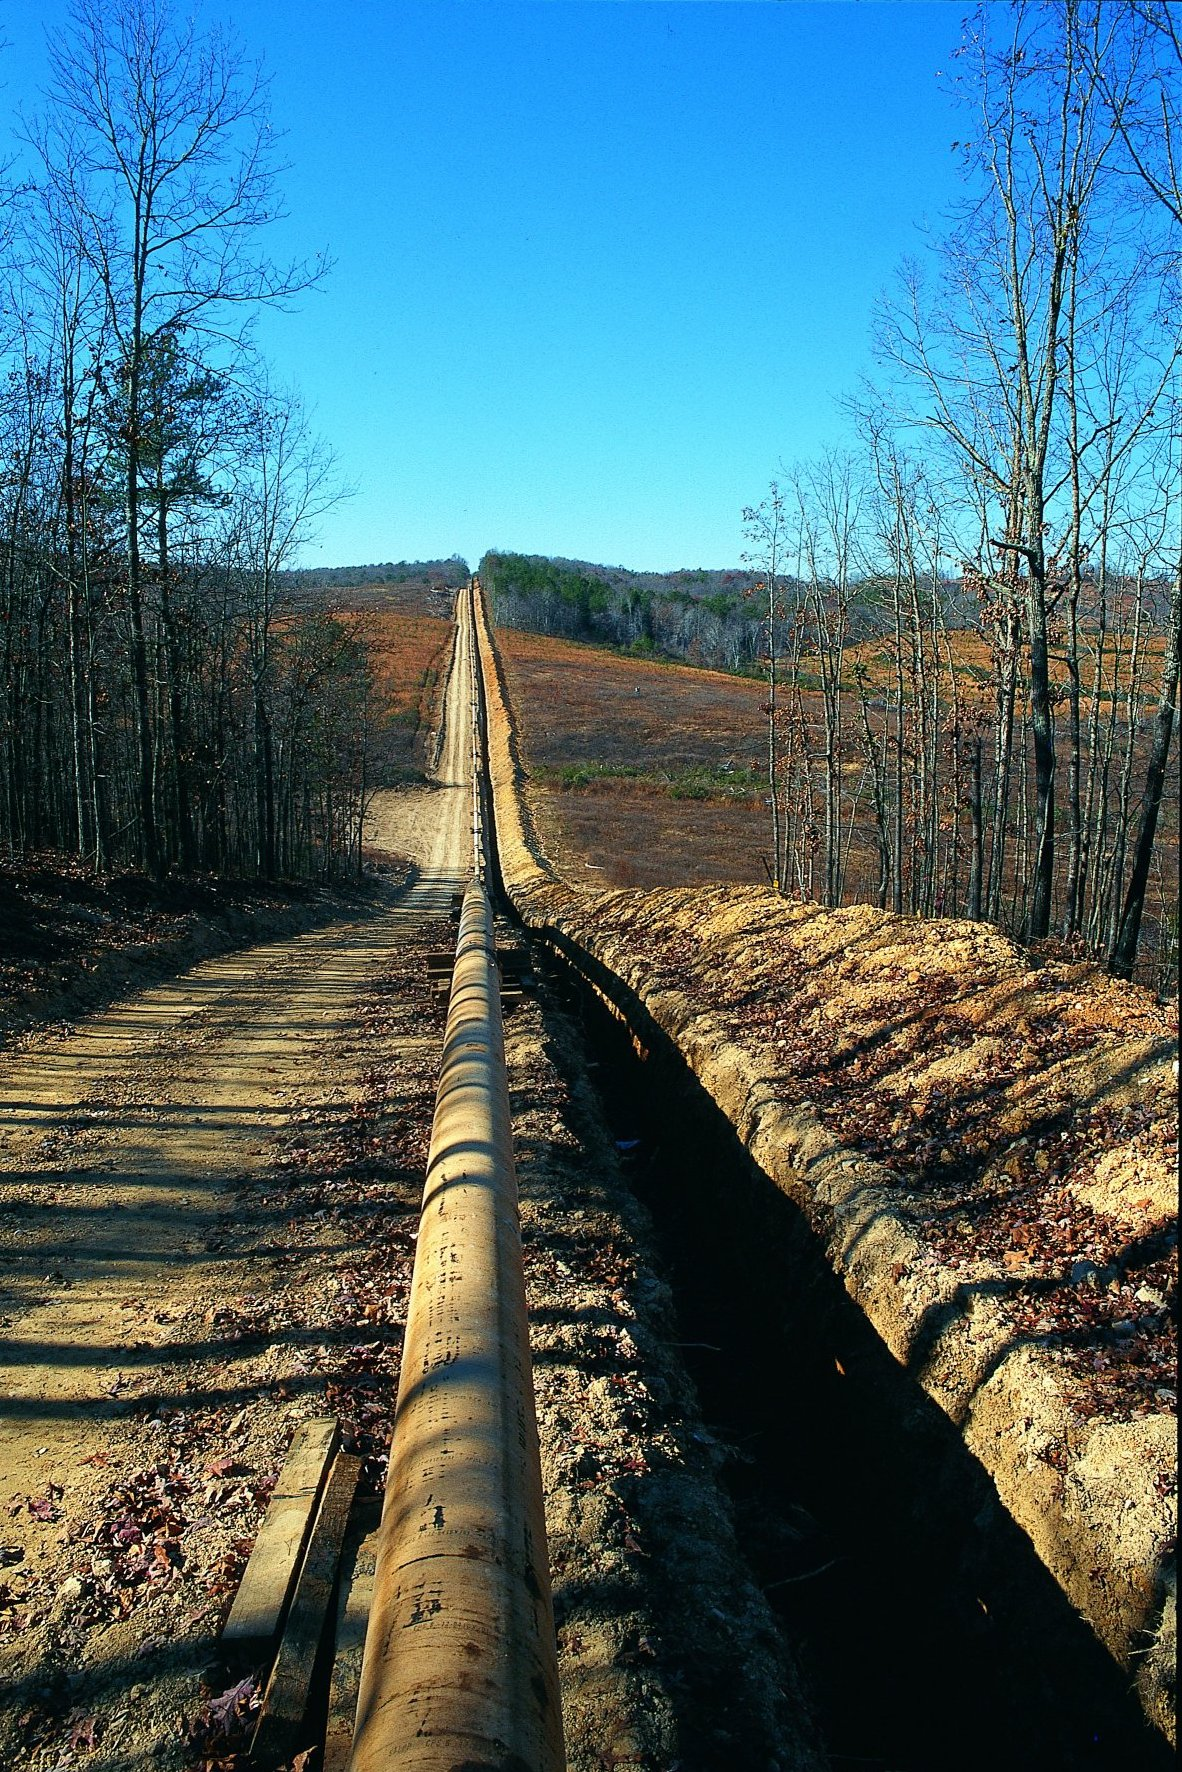 the efficiency of pipeline distribution makes new cross country lines a viable investment